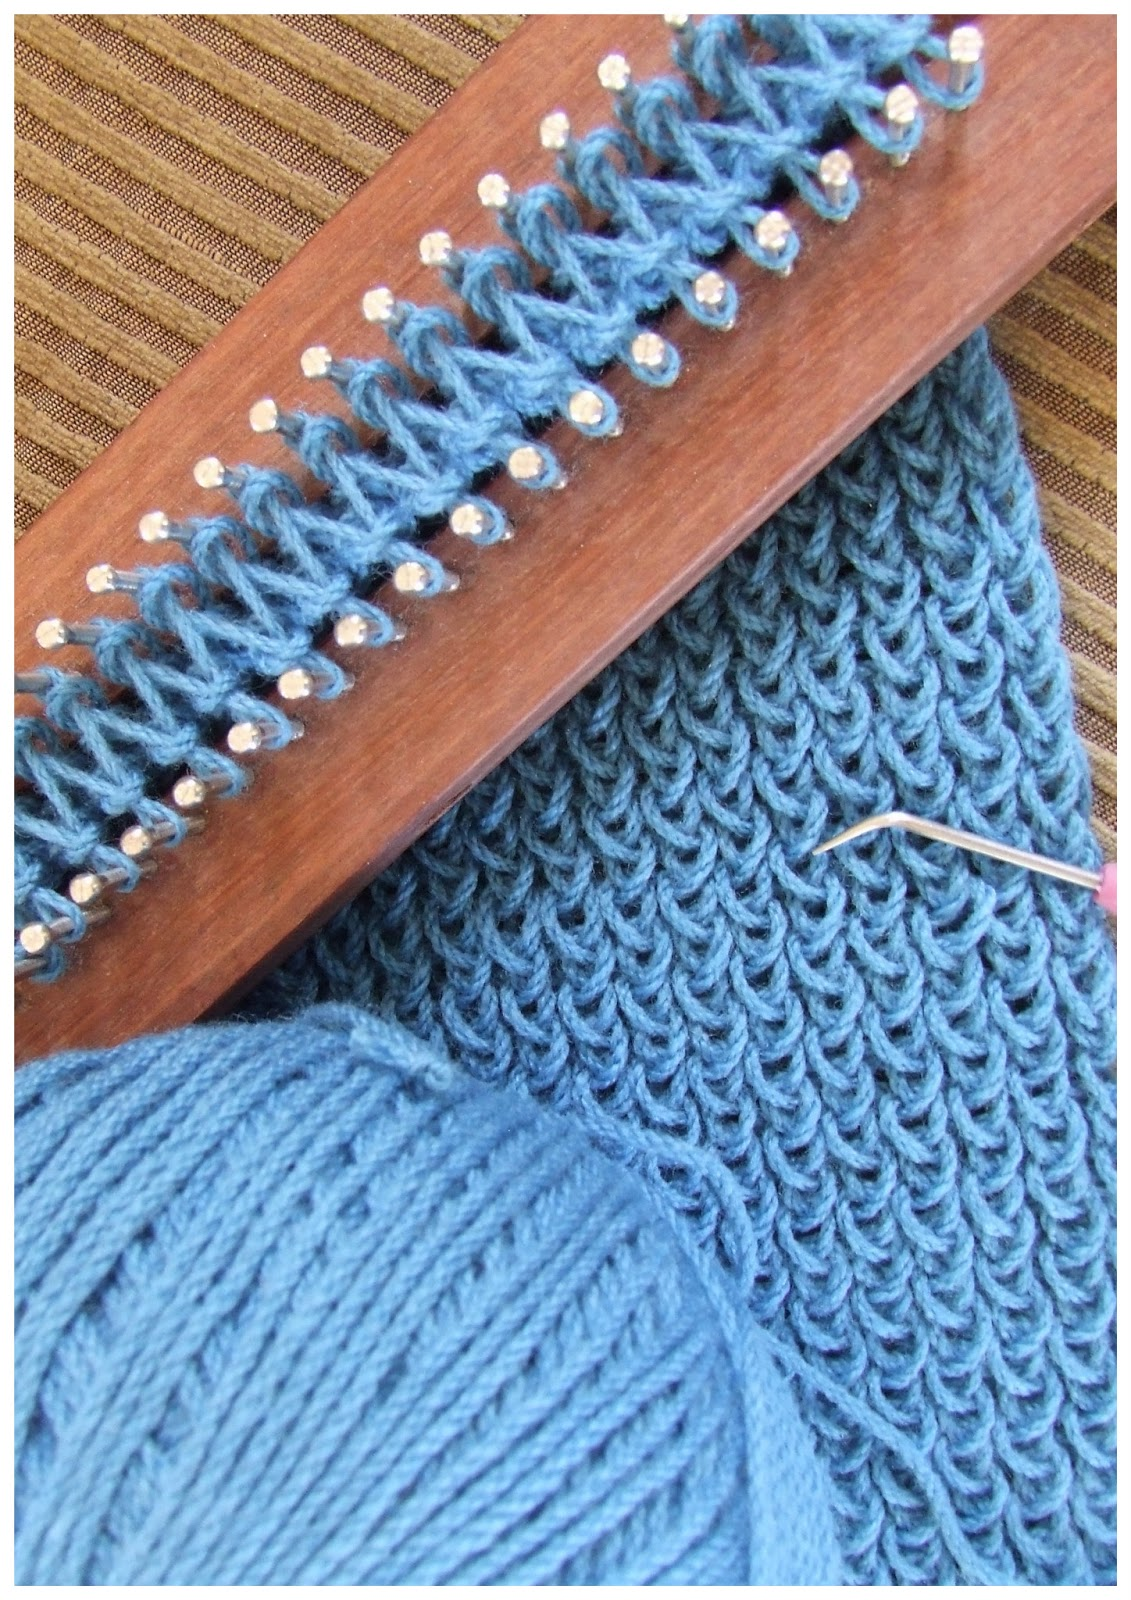 Knitting Loom Ideas : Fitzbirch crafts loom knitting